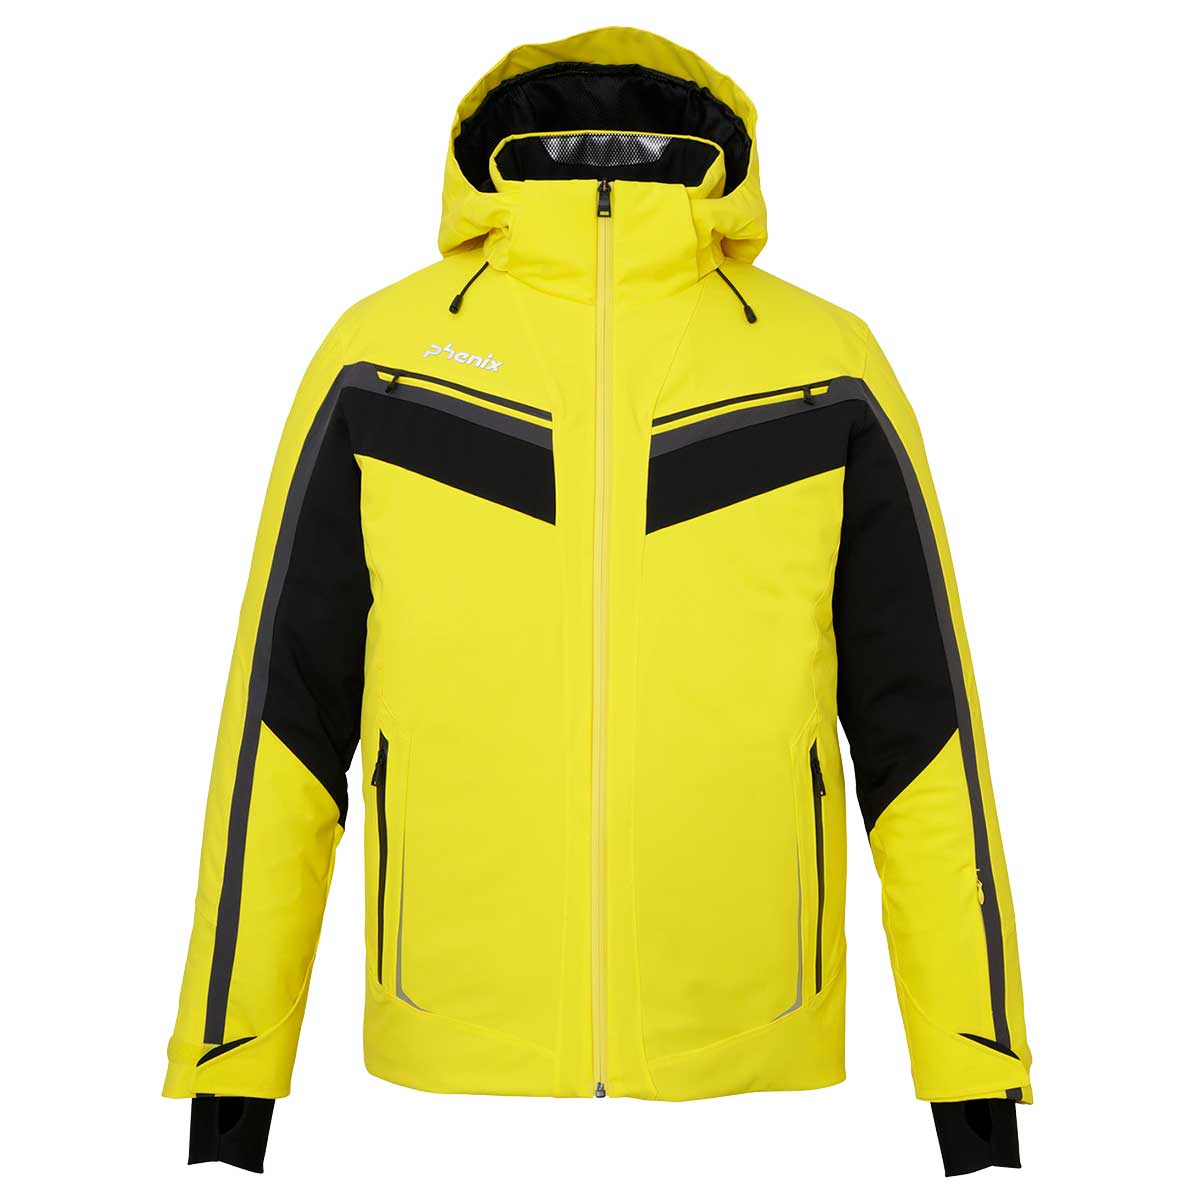 Phenix men's Trueno Jacket in Yellow front view